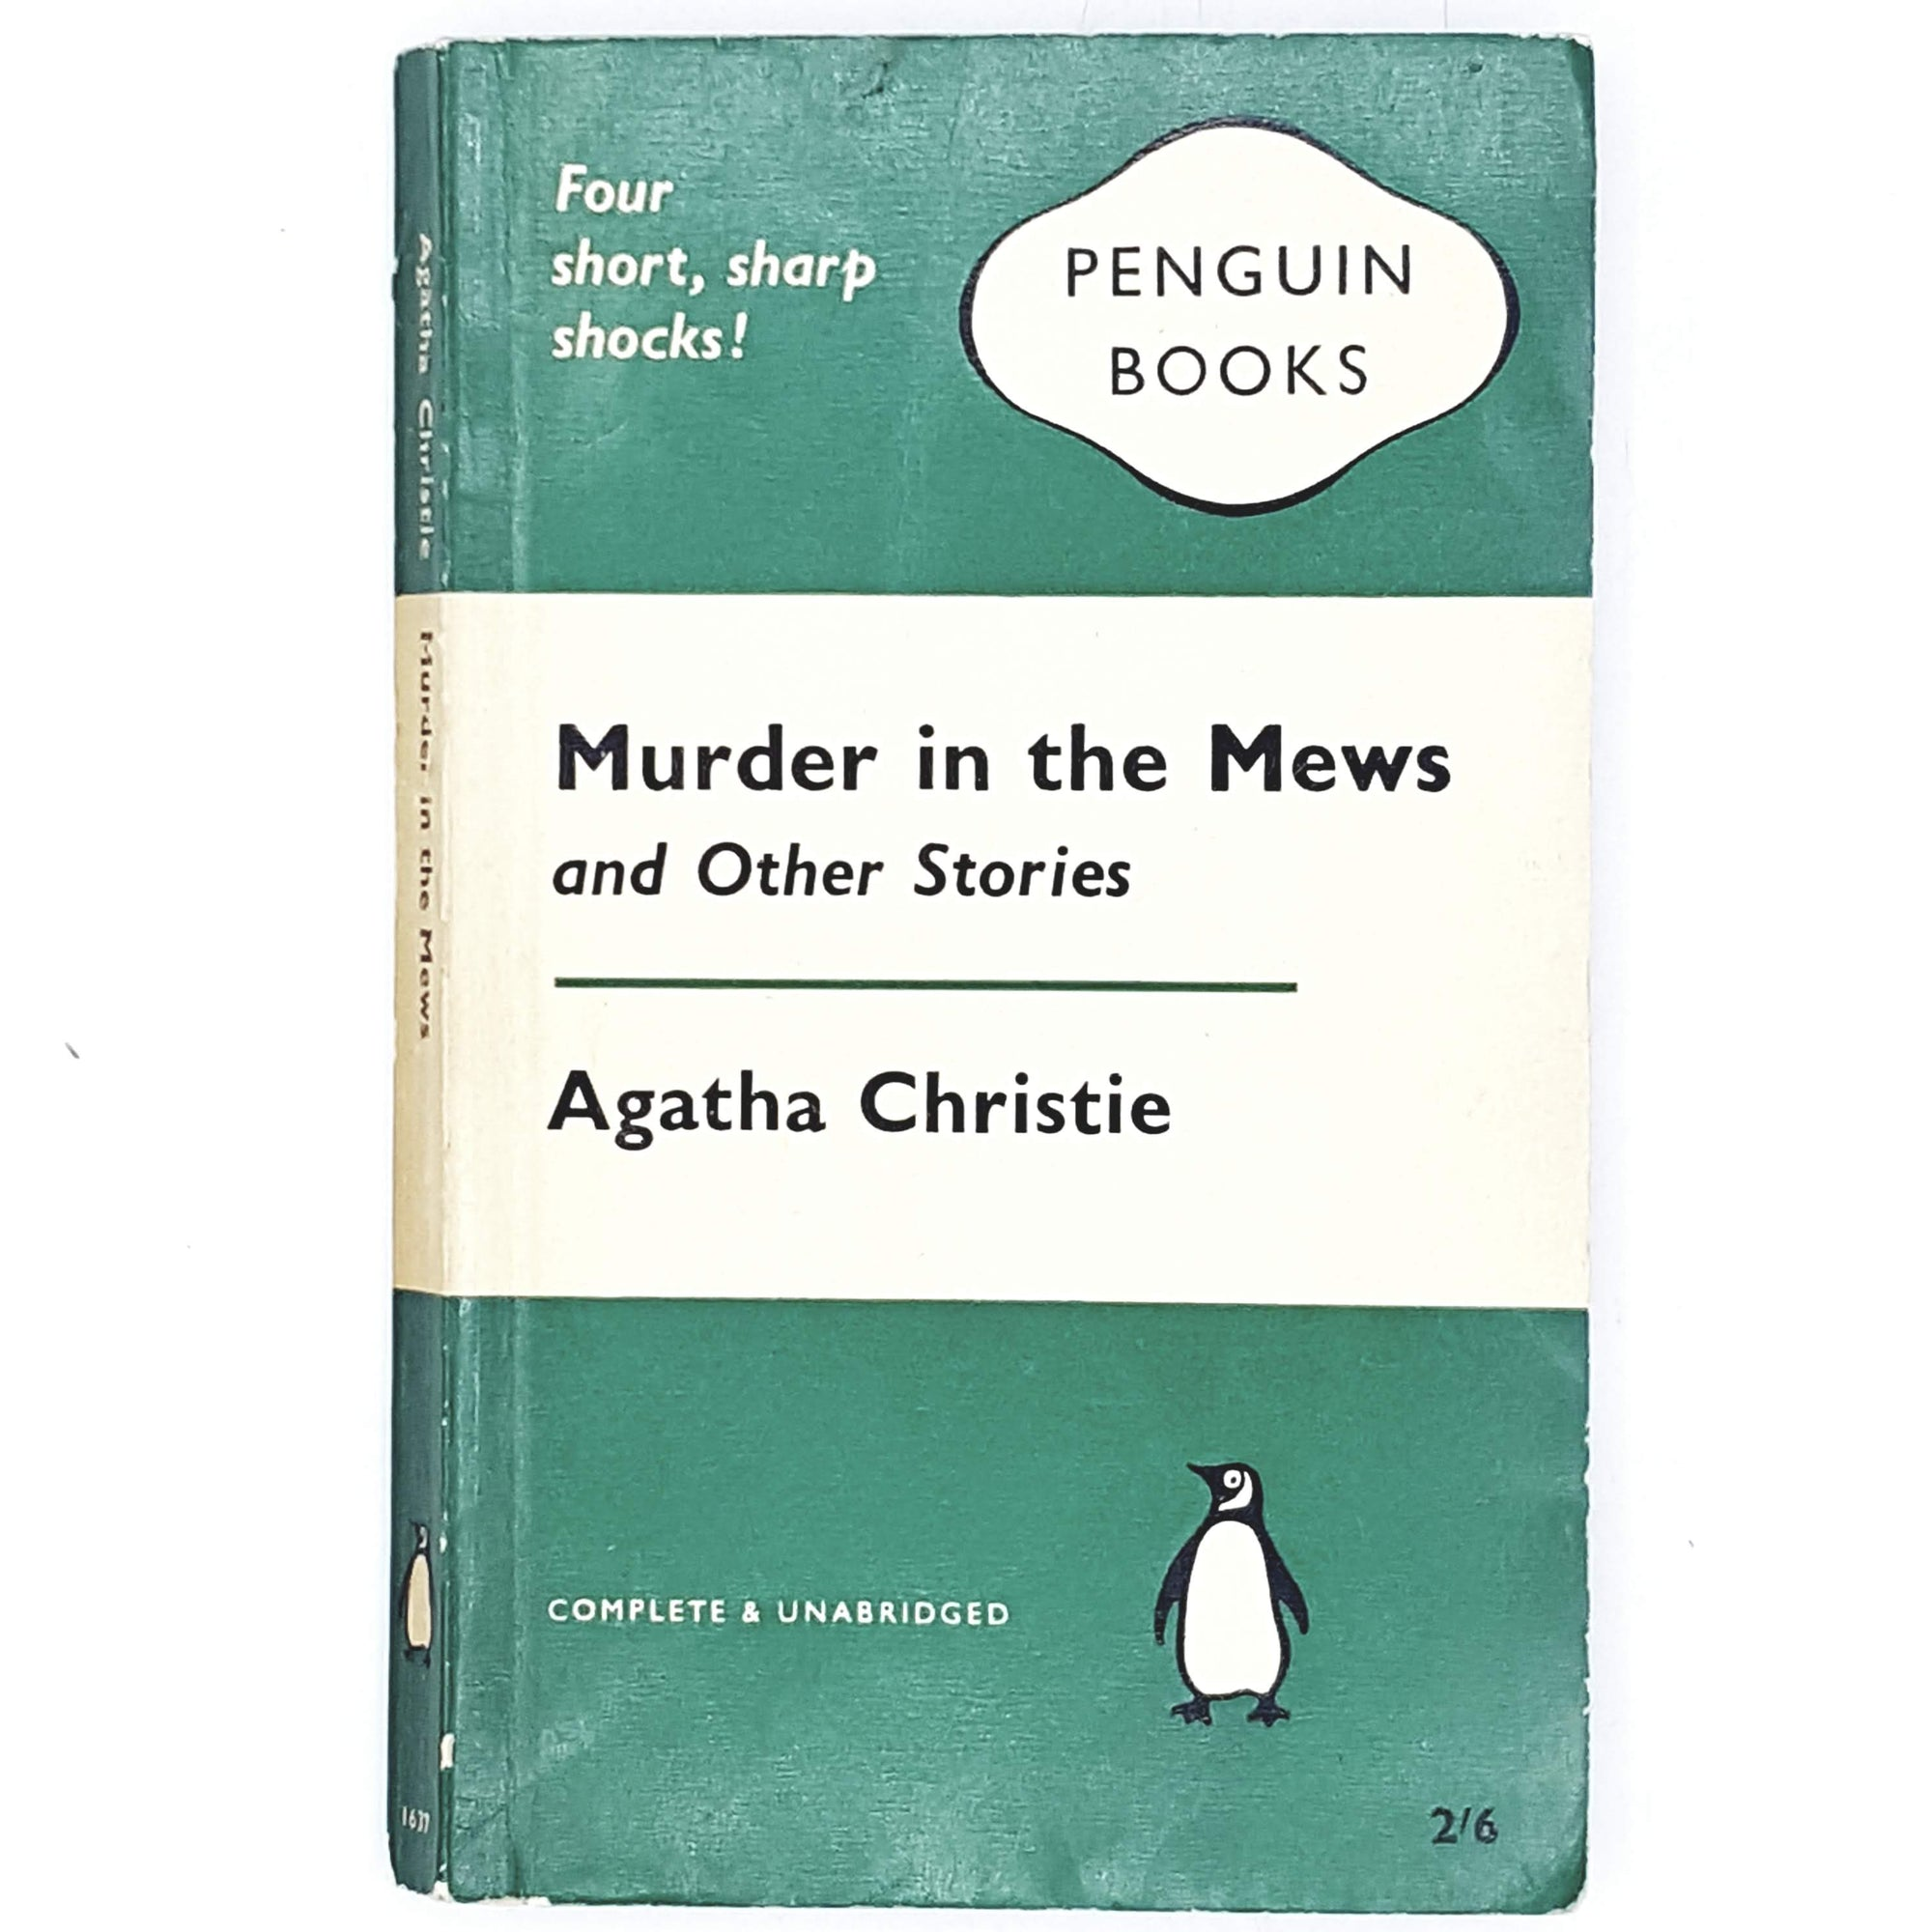 agatha-christie-green-crime-murder-news-vintage-book-country-house-library